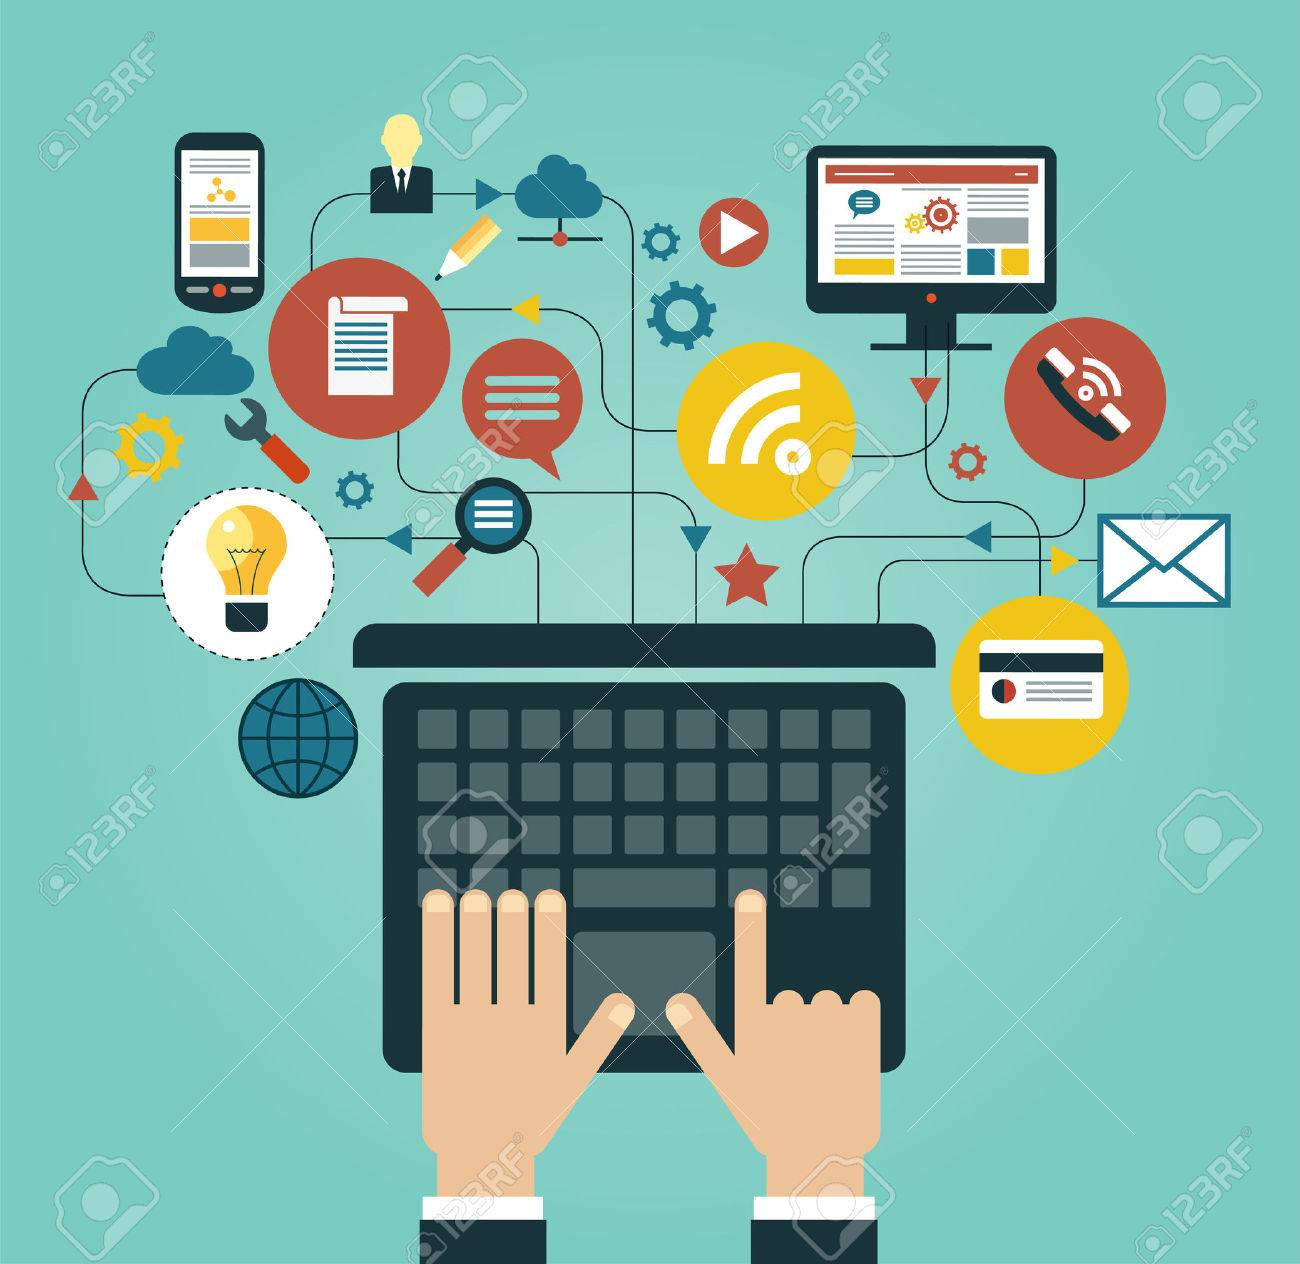 Human hand with a laptop surrounded by icons. Concept of communication in the network Standard-Bild - 46874158